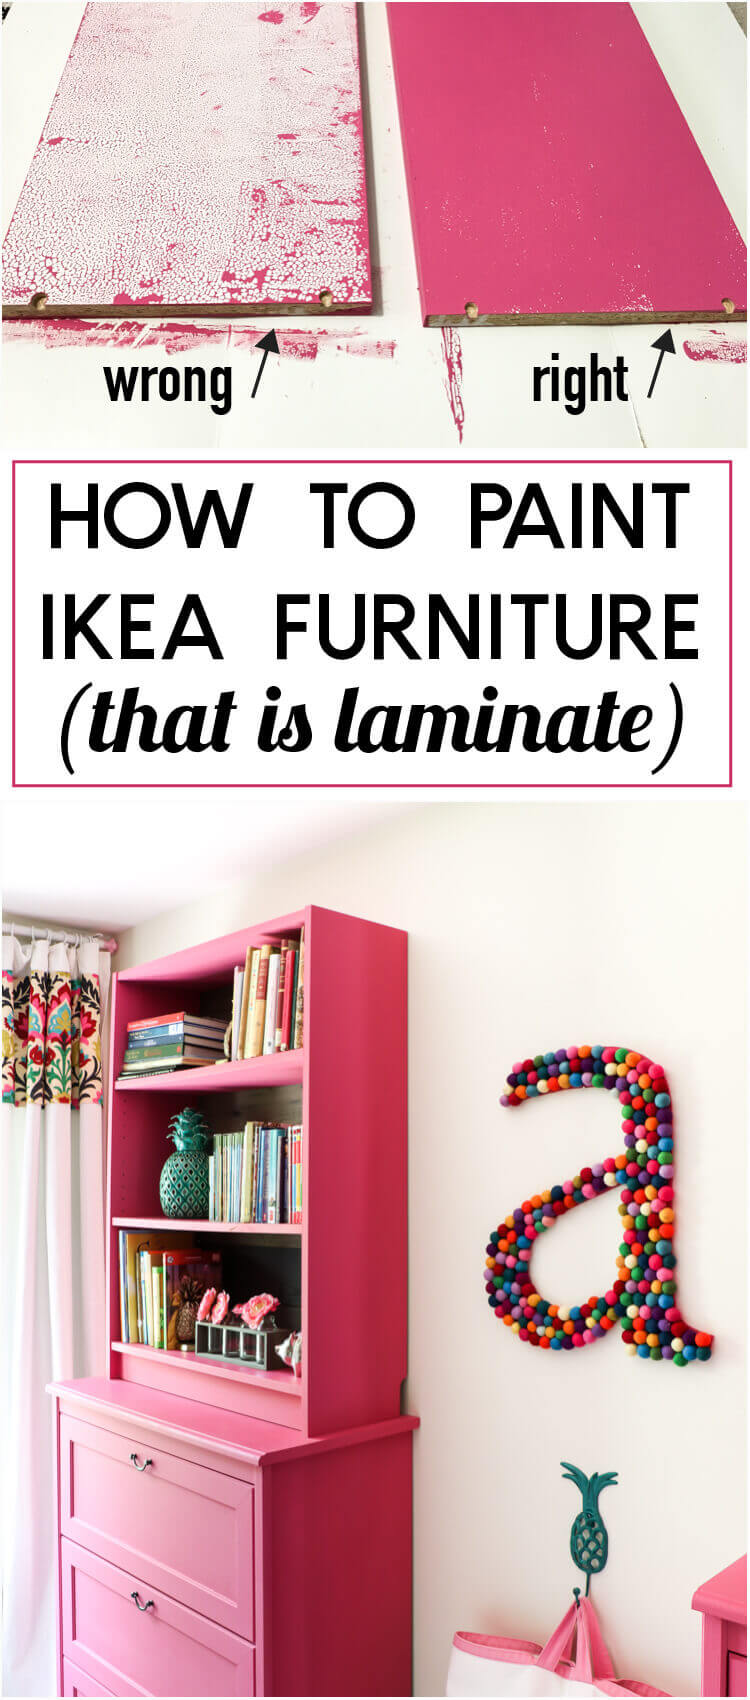 Giving Laminate Ikea Pieces a Paint Makeover